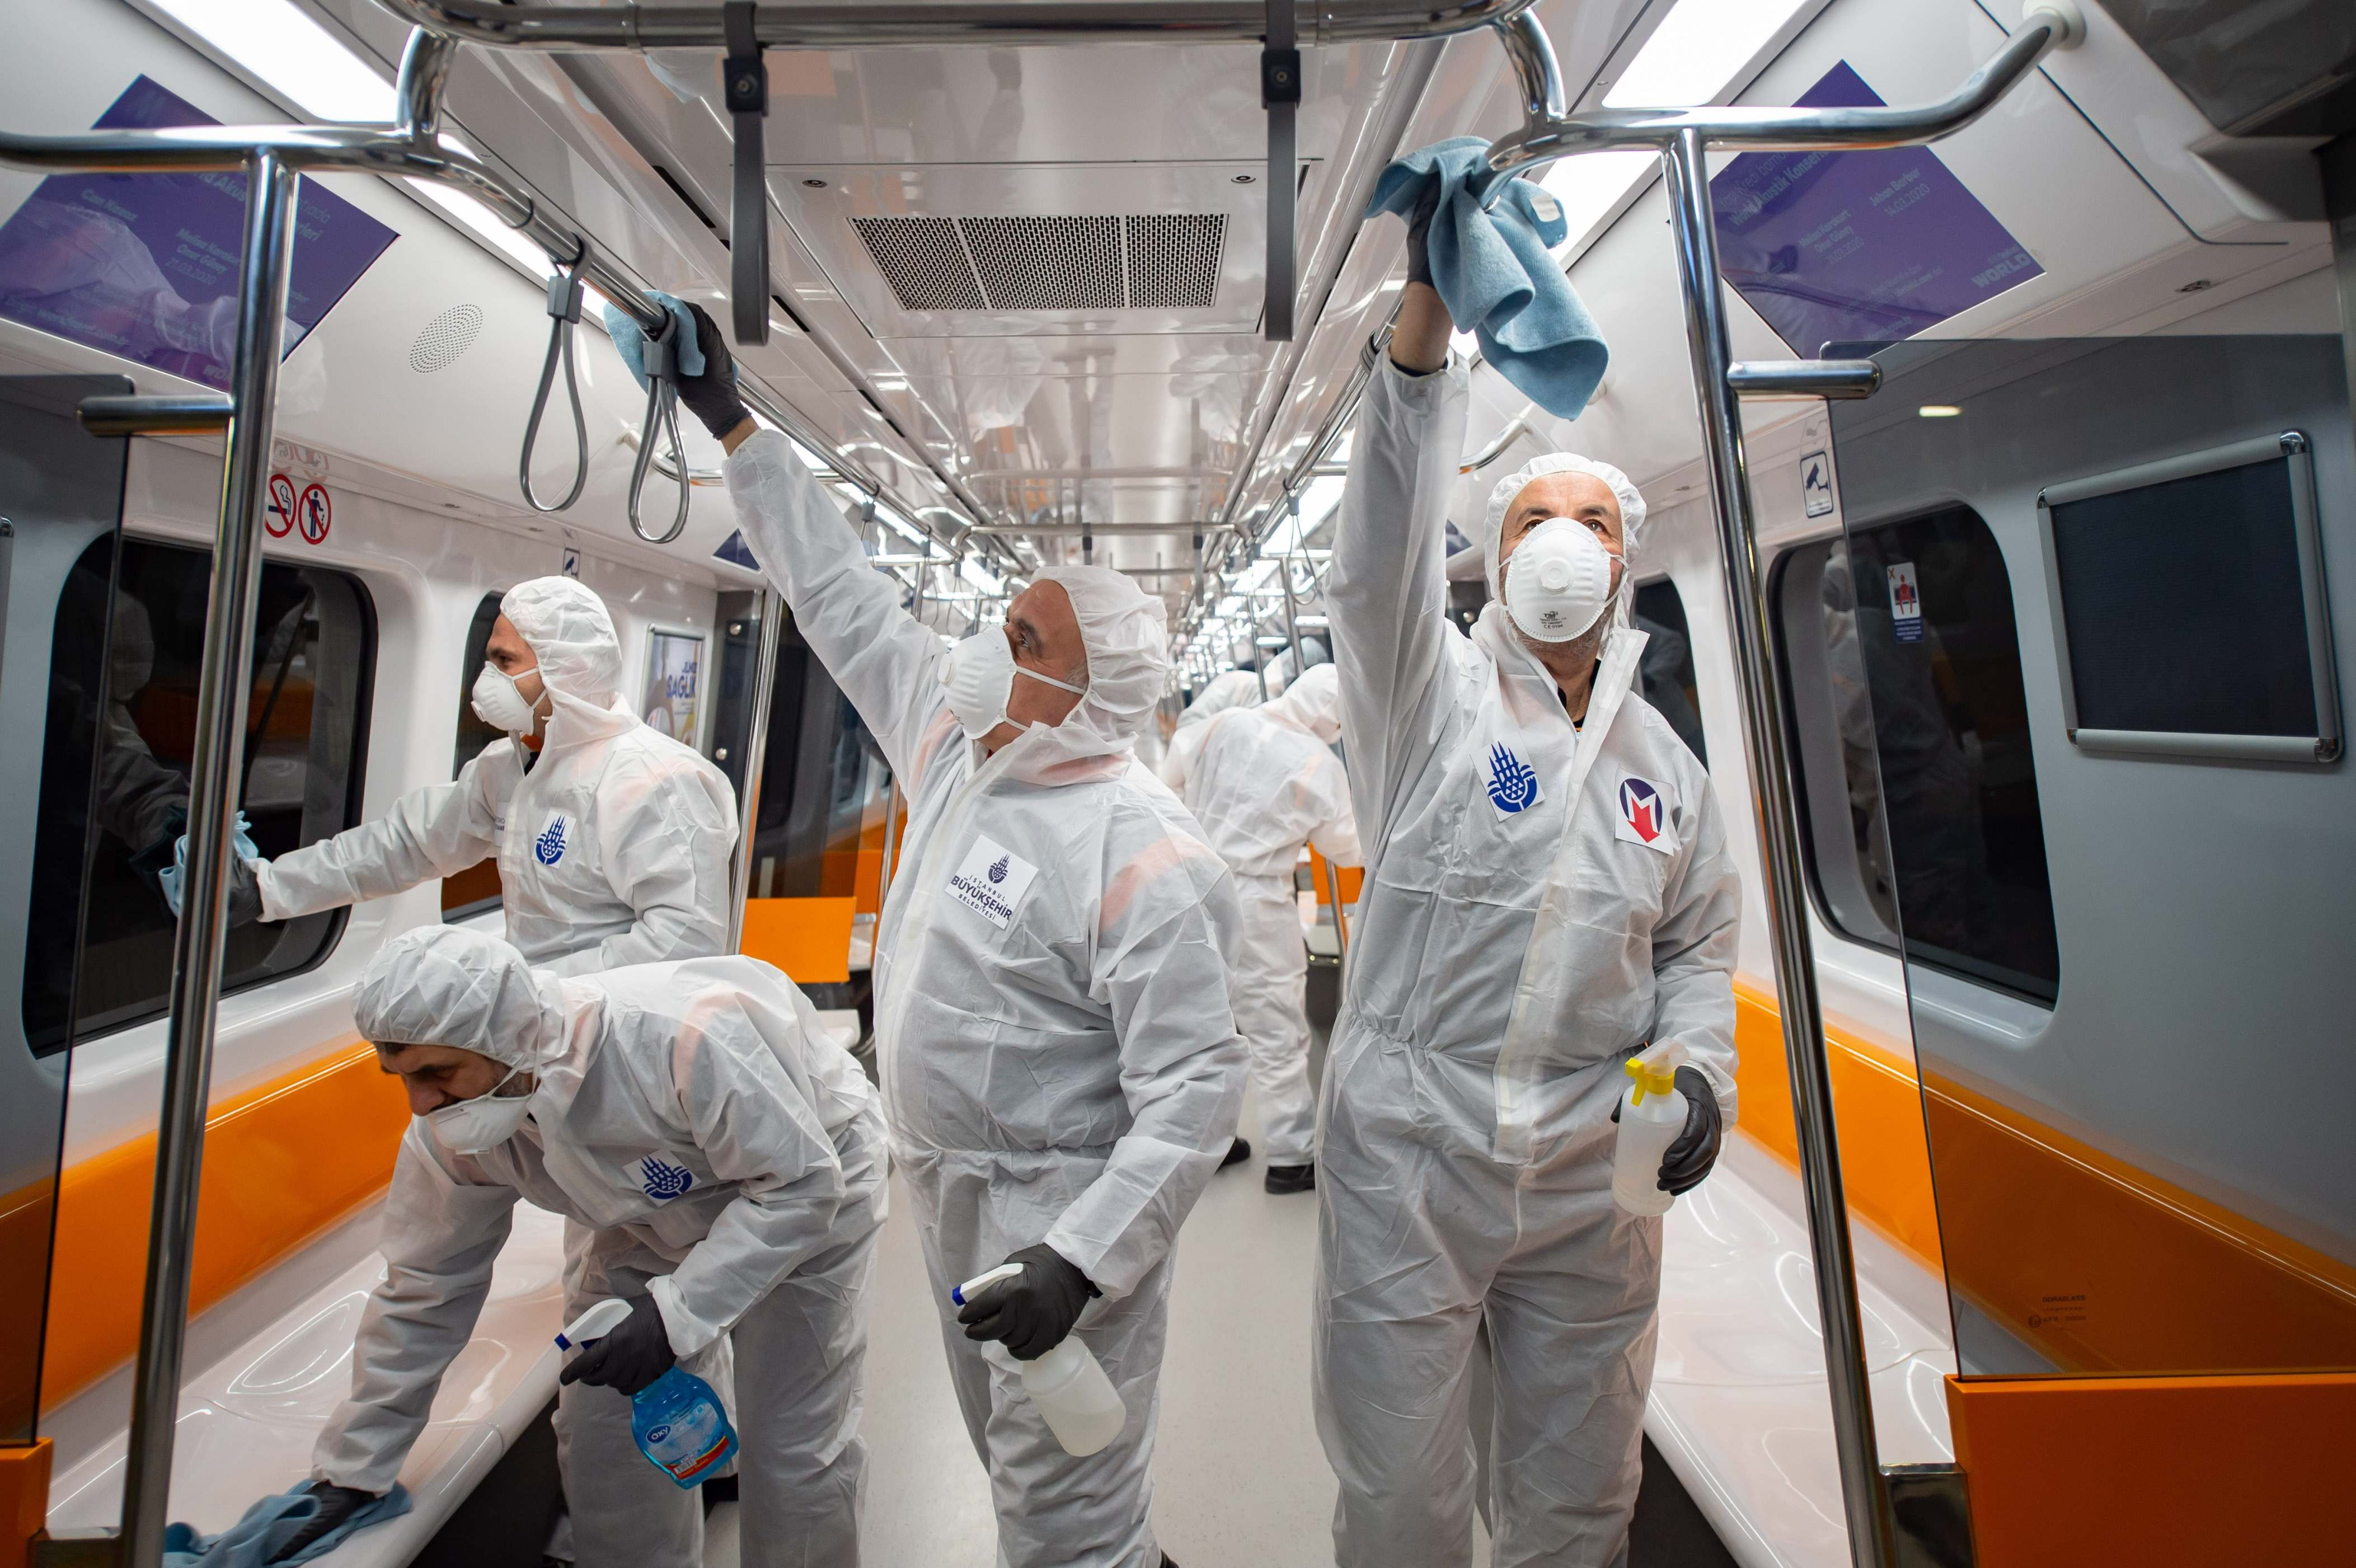 Slide 80 of 113: Employees of the Istanbul Municipality wearing protective gear disinfects a subway carriage to prevent the spread of the COVID-19, caused by the novel coronavirus, in Istanbul on March 12, 2020. Turkey announced on March 11, 2020 its first coronavirus case, a man who had recently travelled to Europe and is in good health.